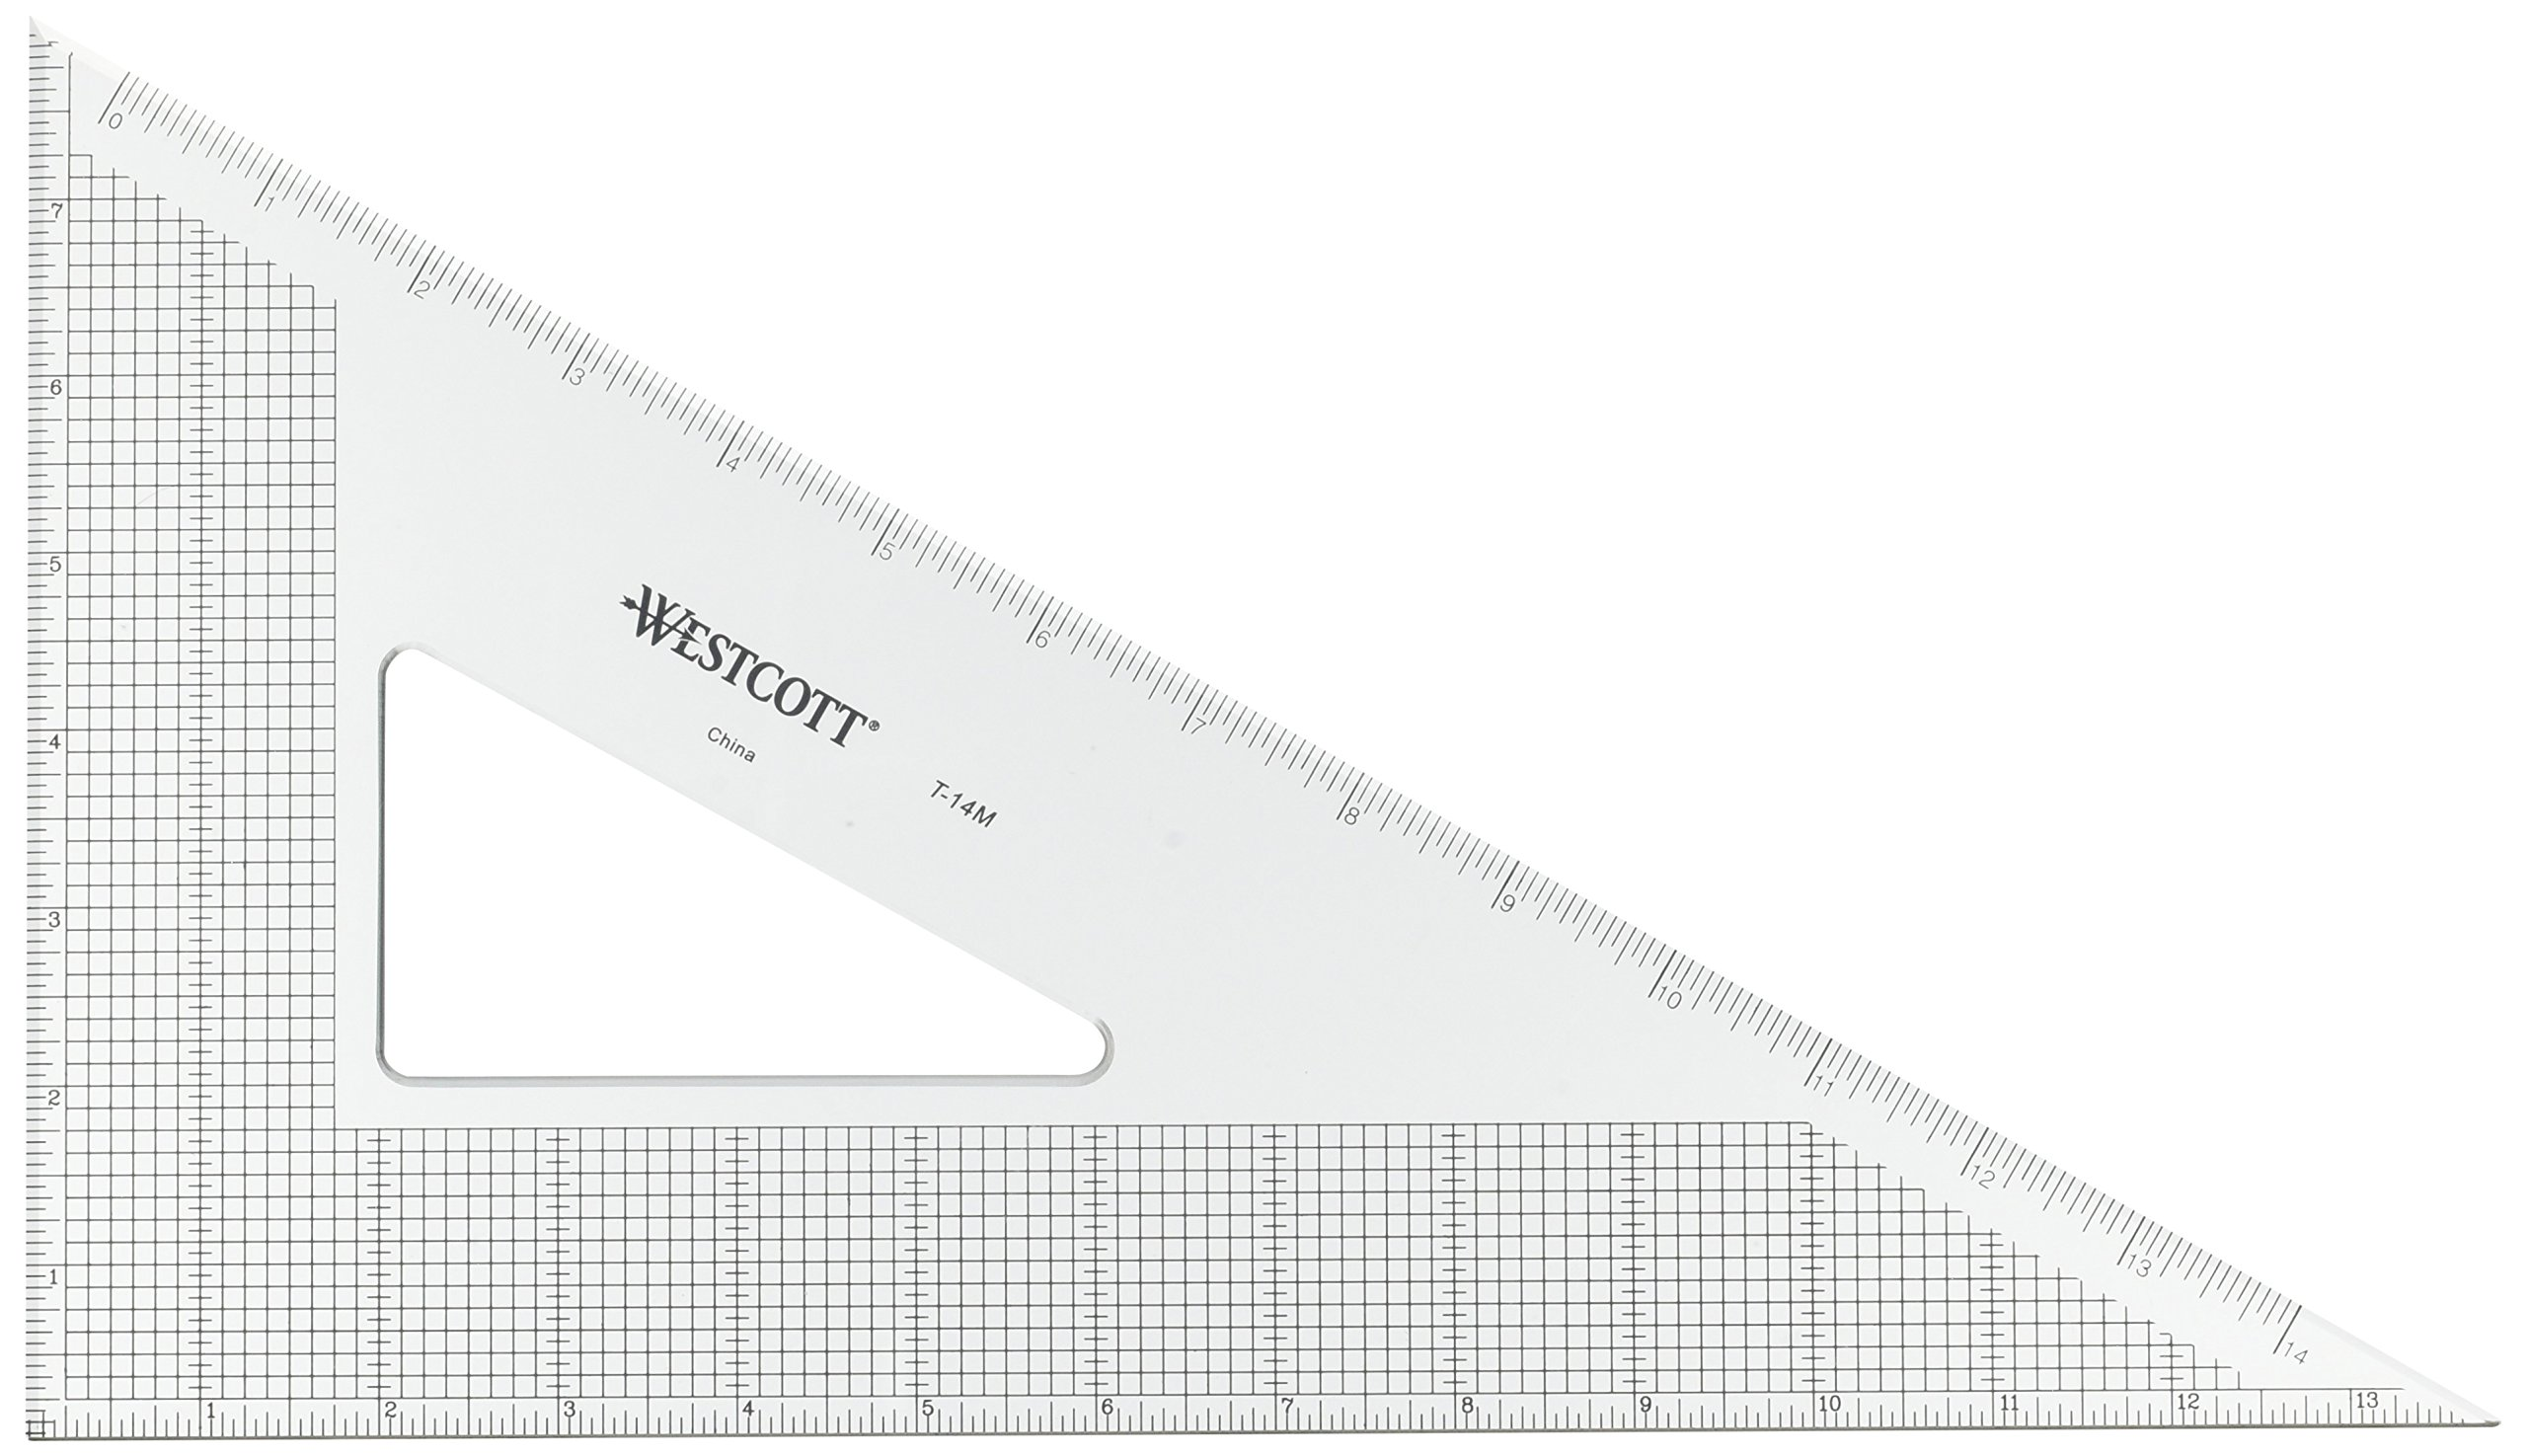 Westcott Grid Triangle, 14'', 30/60 Degree, Transparent (T-14M) by Westcott